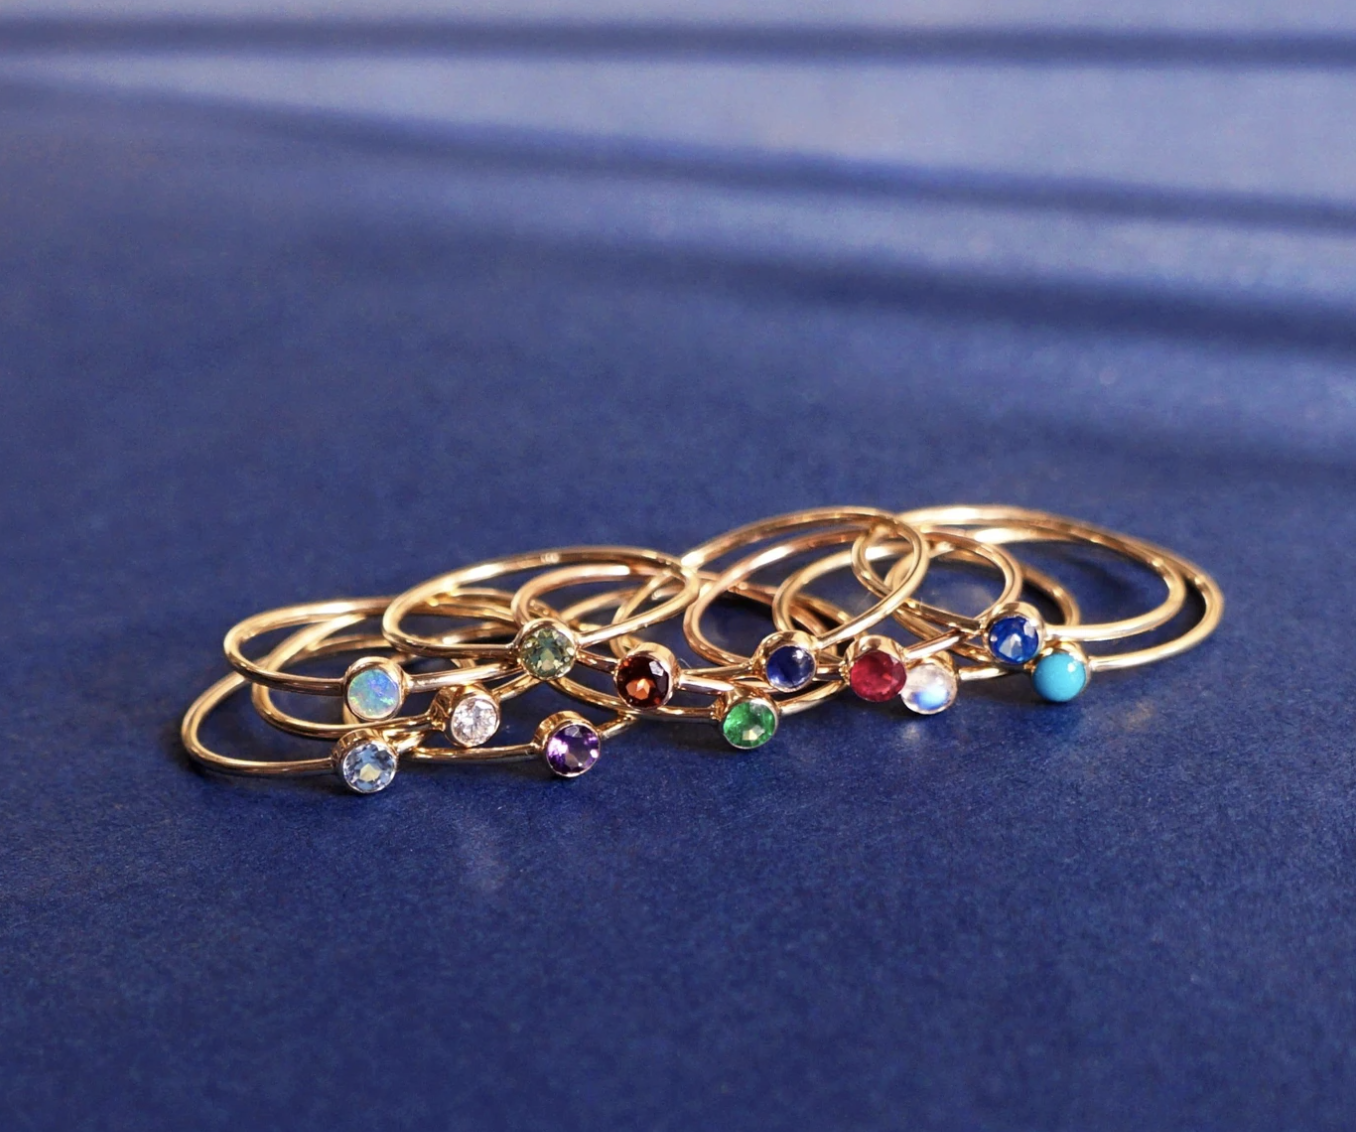 The 12 different birthstone rings arranged on a surface